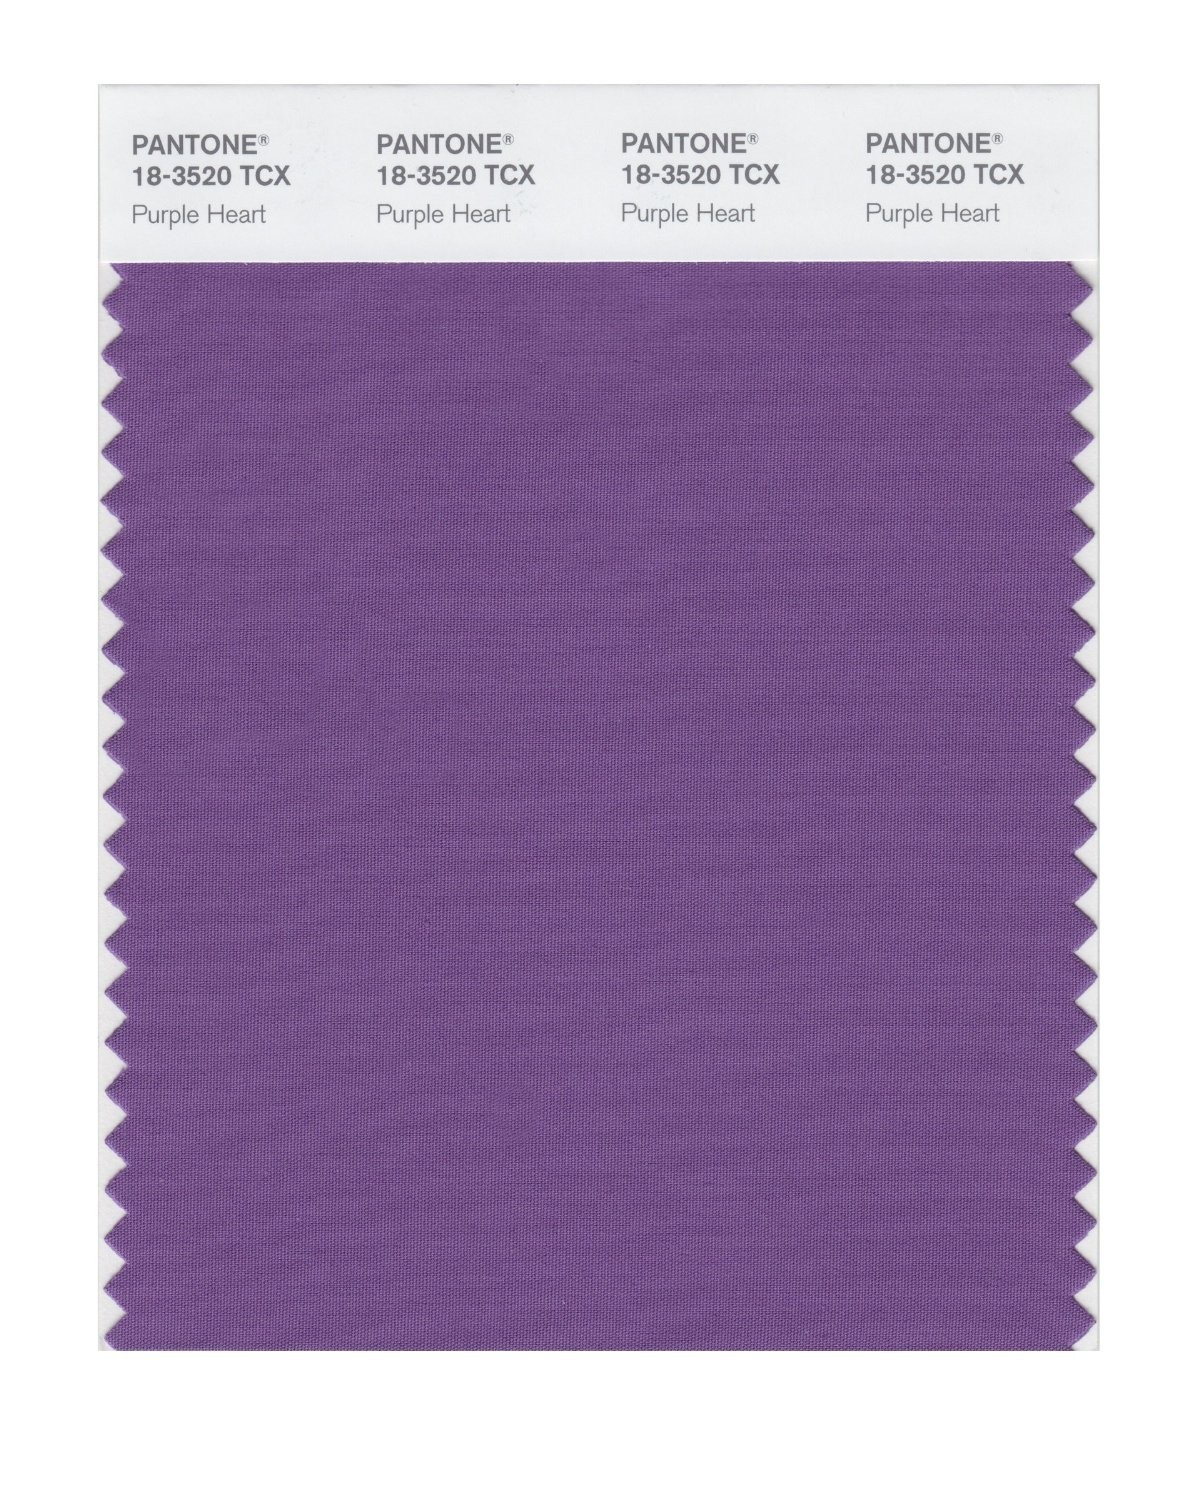 Pantone 18-3520 TCX Swatch Card Purple Heart